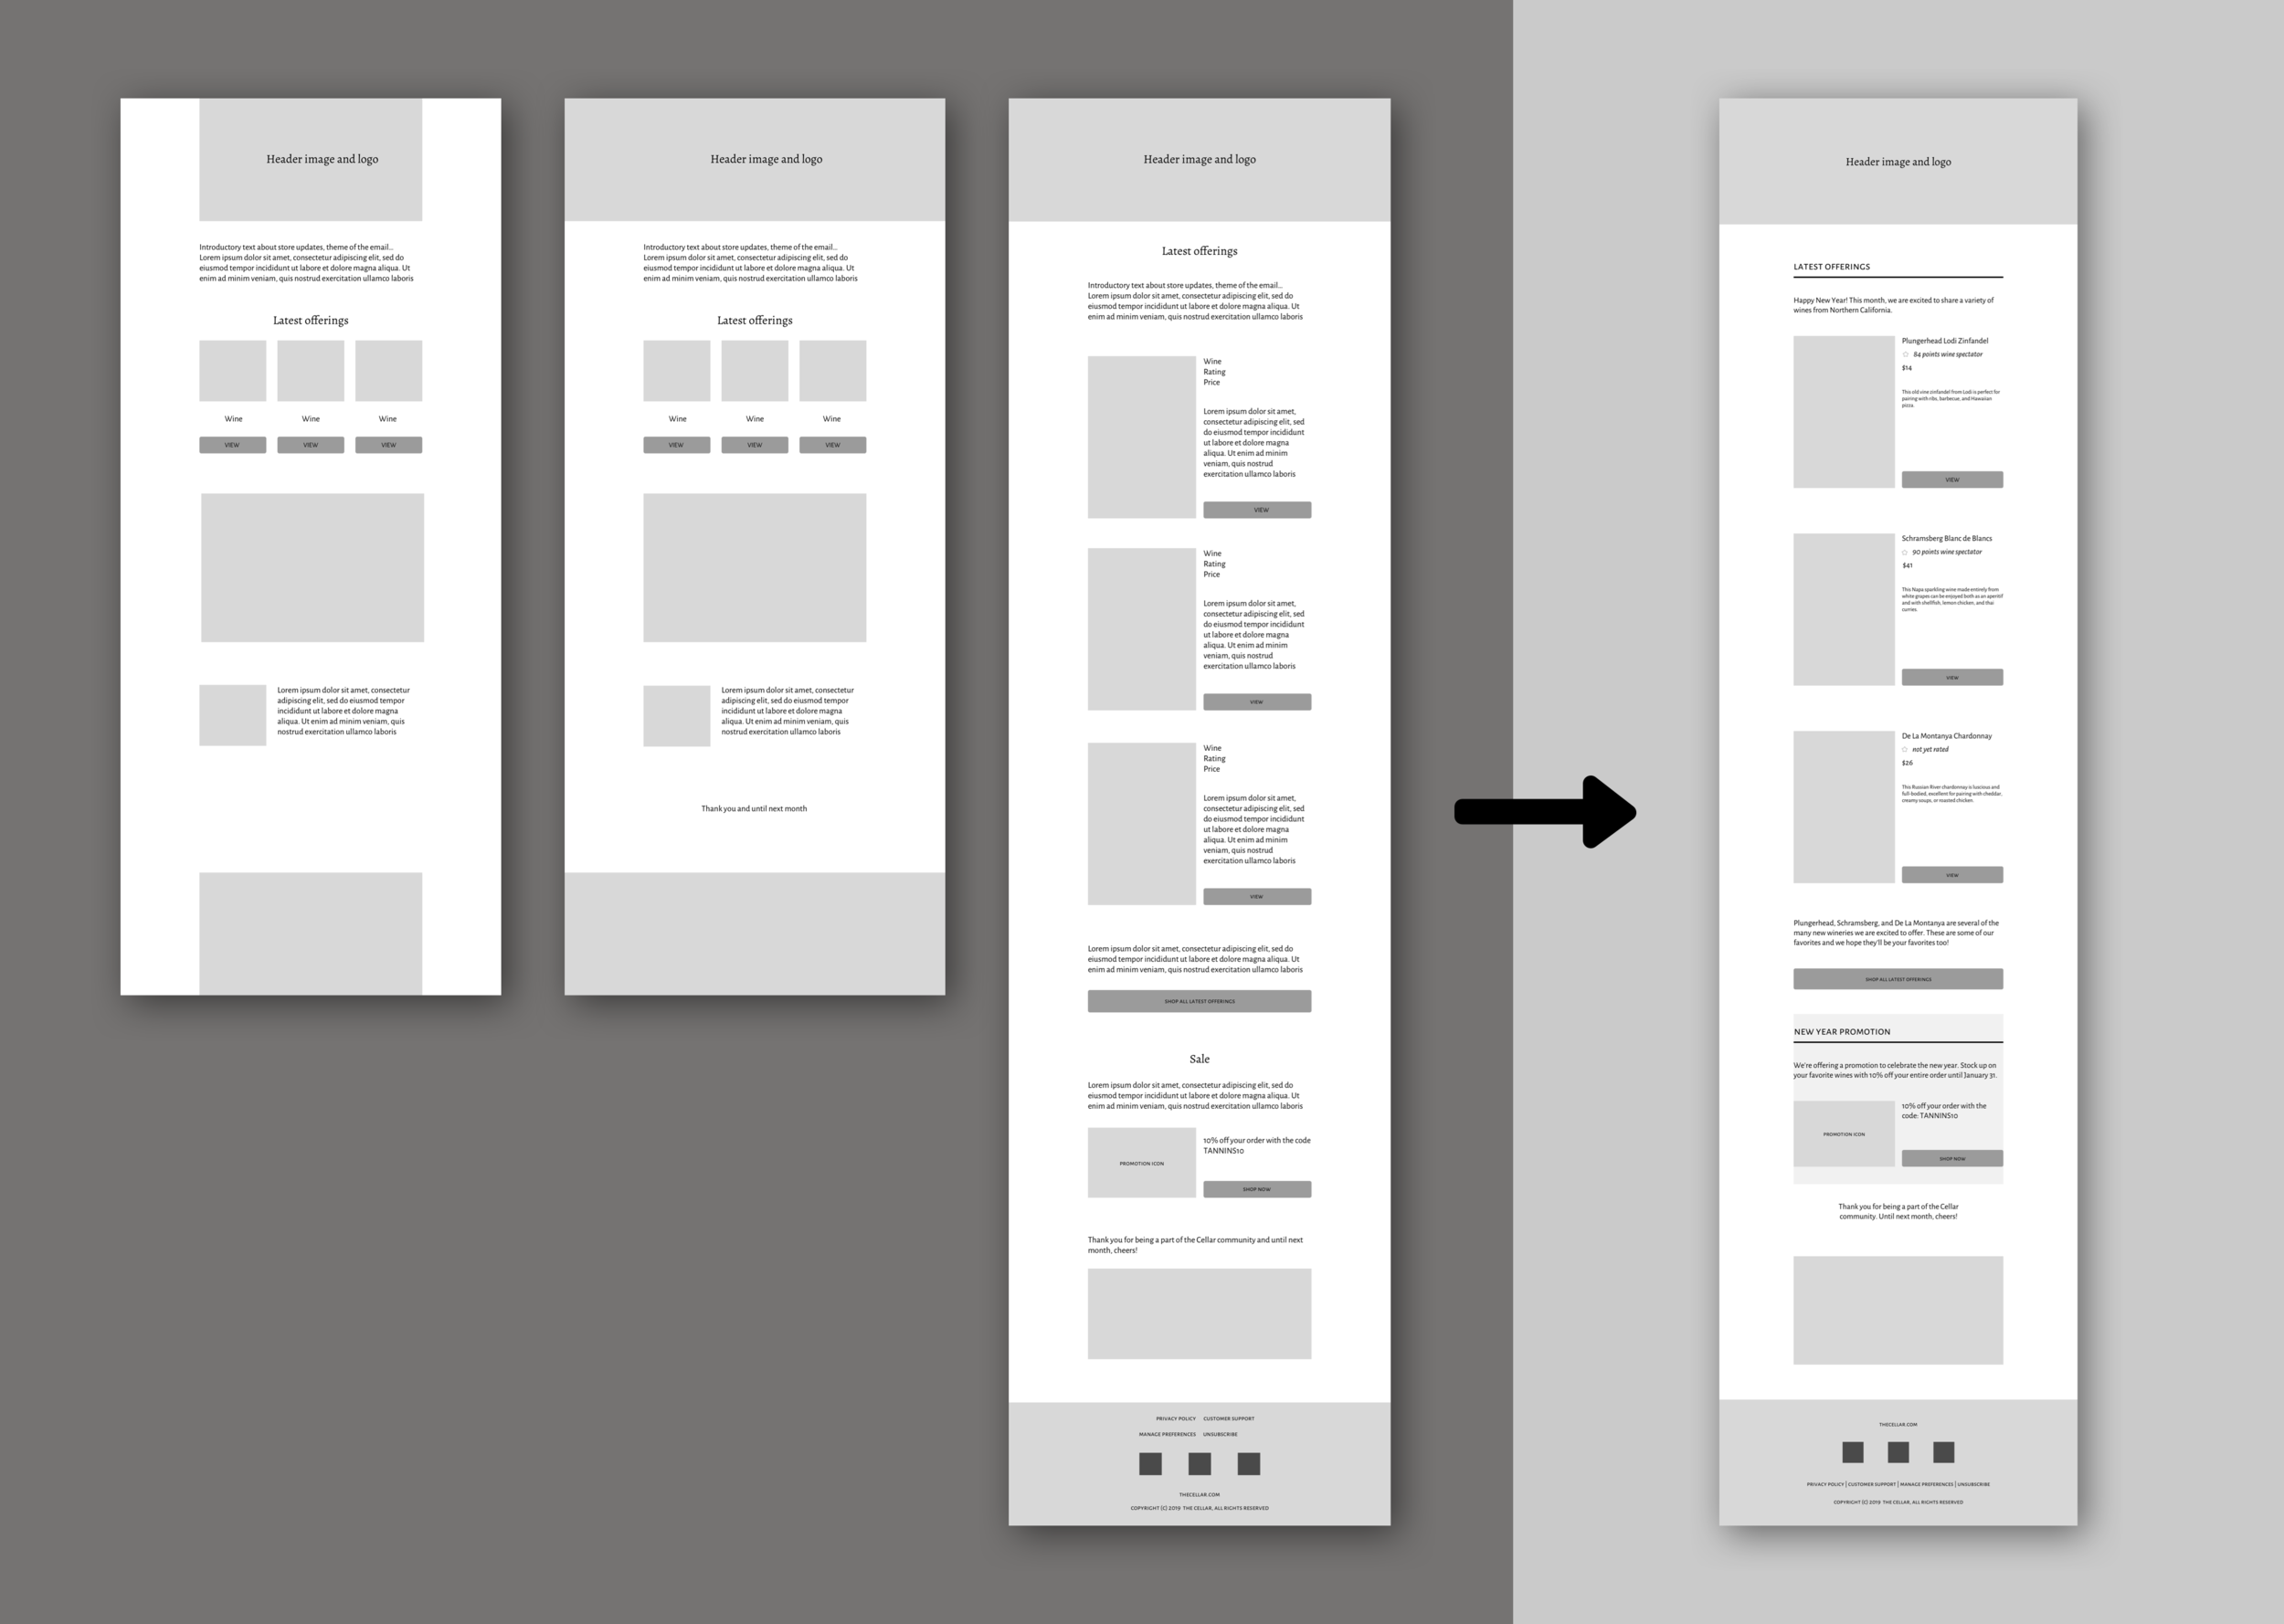 Email Wireframes.png